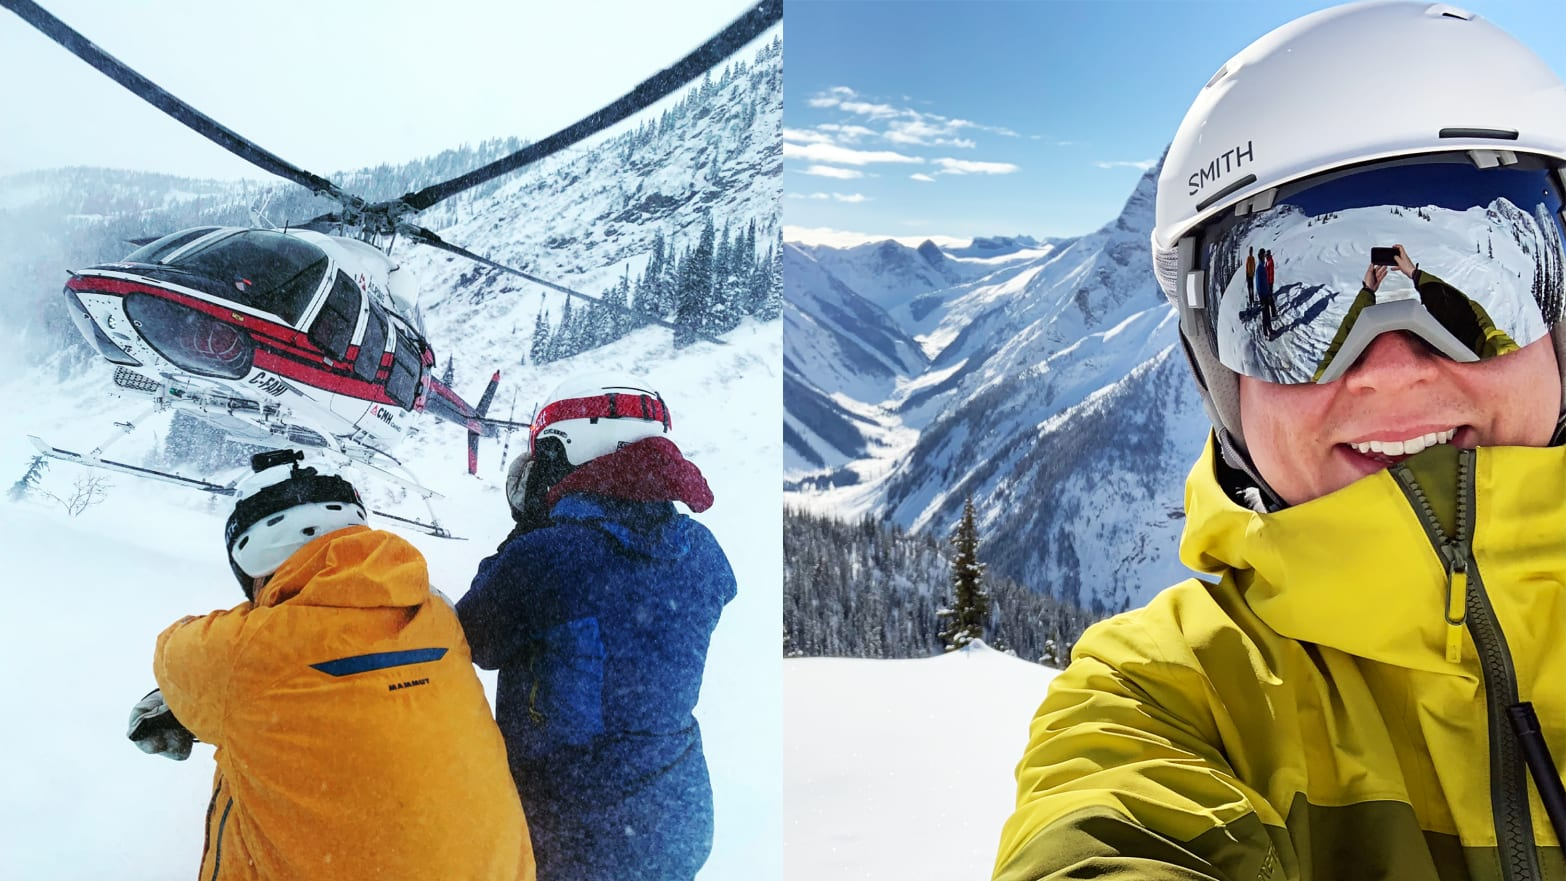 Heli-Skiing: What to Expect on Your First Trip